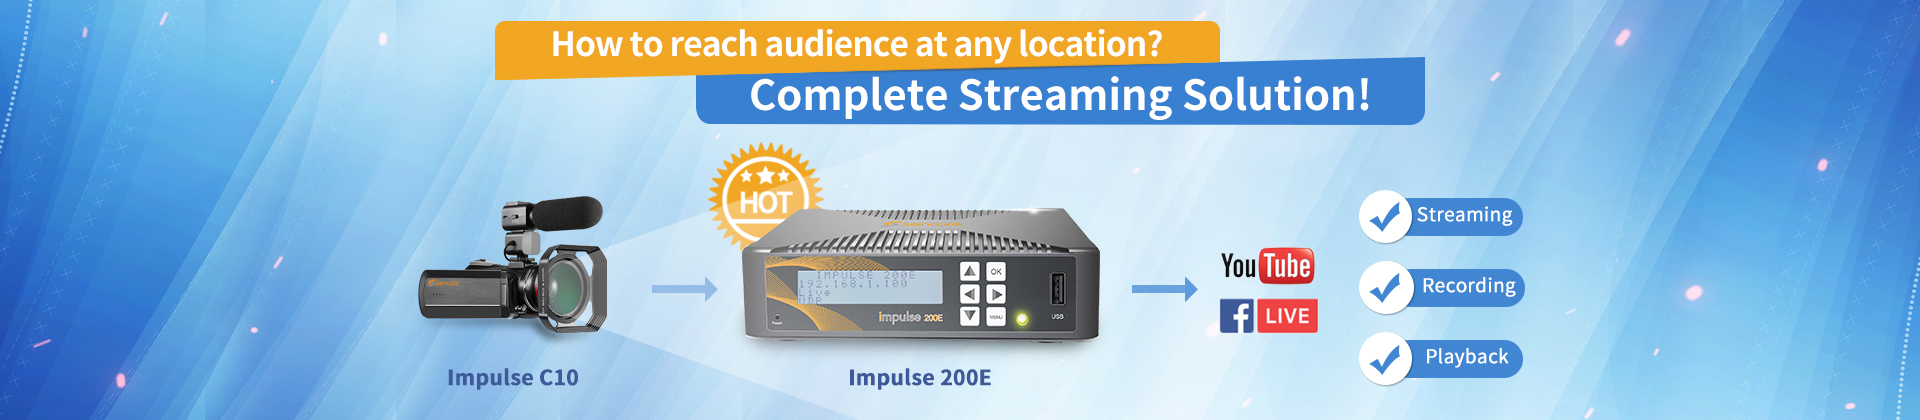 Complete Streaming Solution